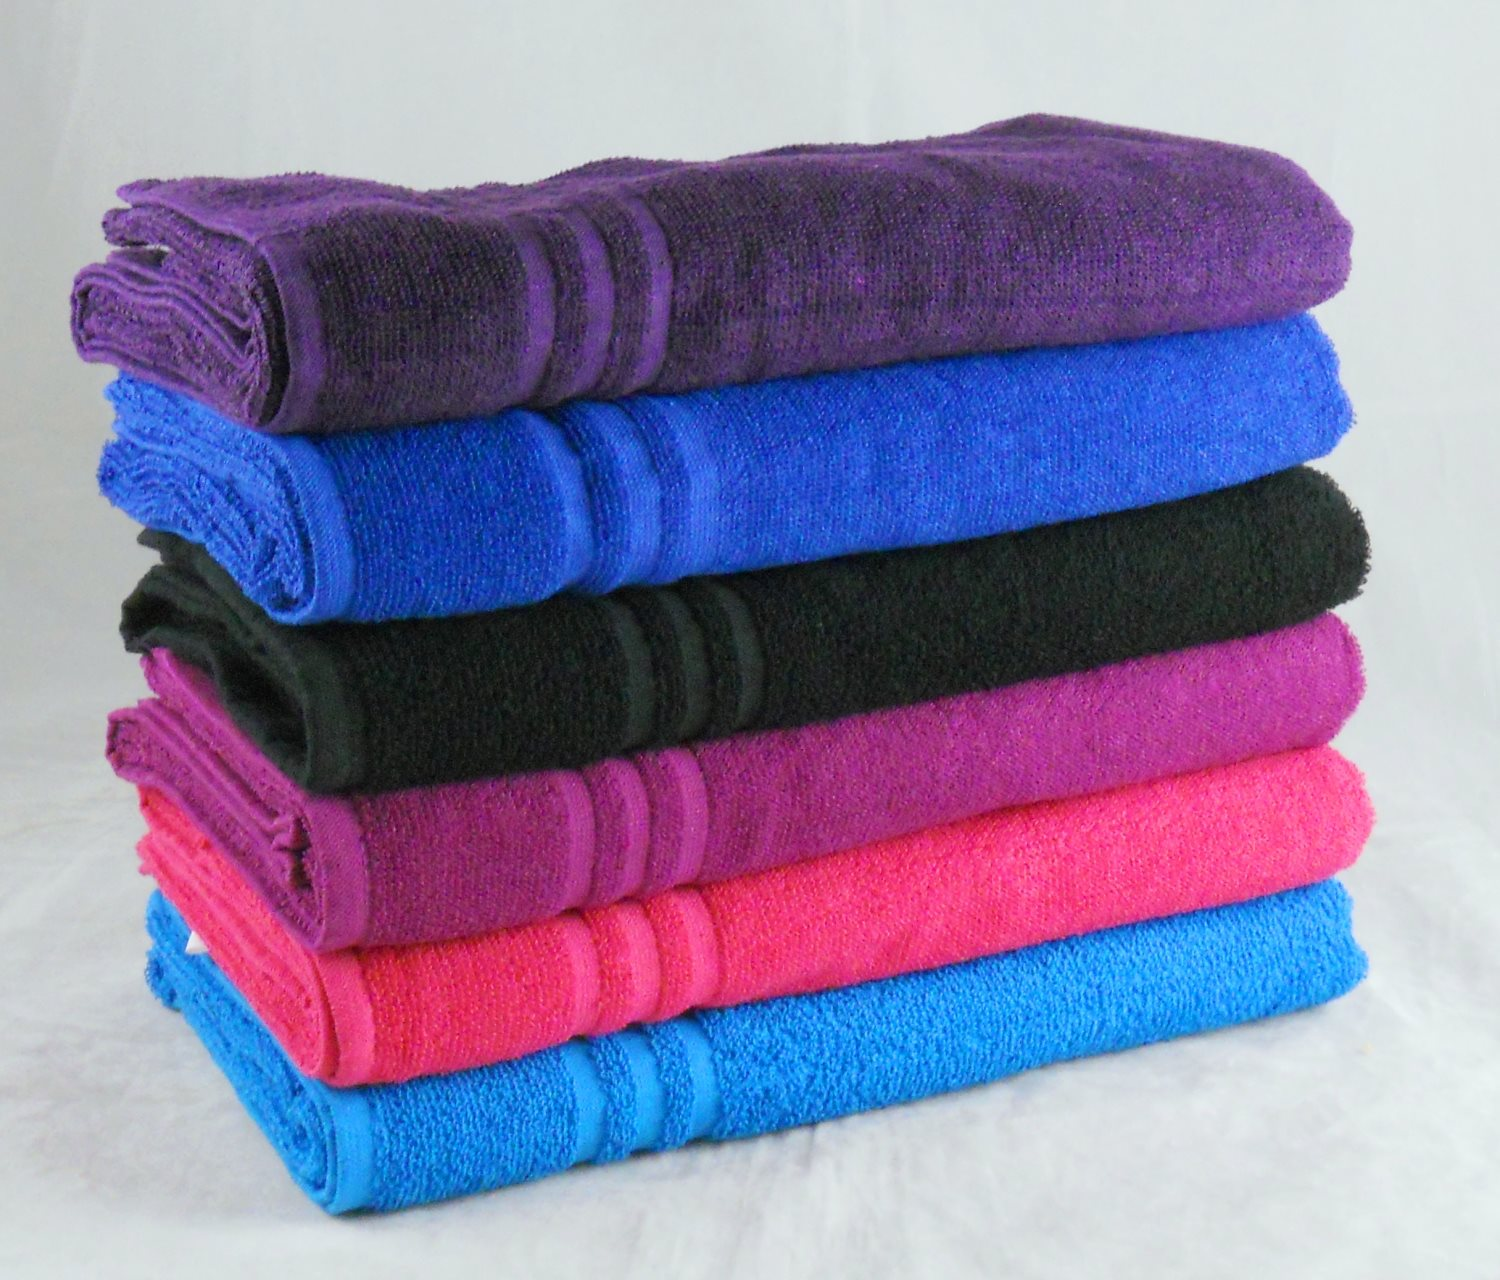 Wholesale Magenta Bath Sheets Budget Quality 380 GSM Pack of 24